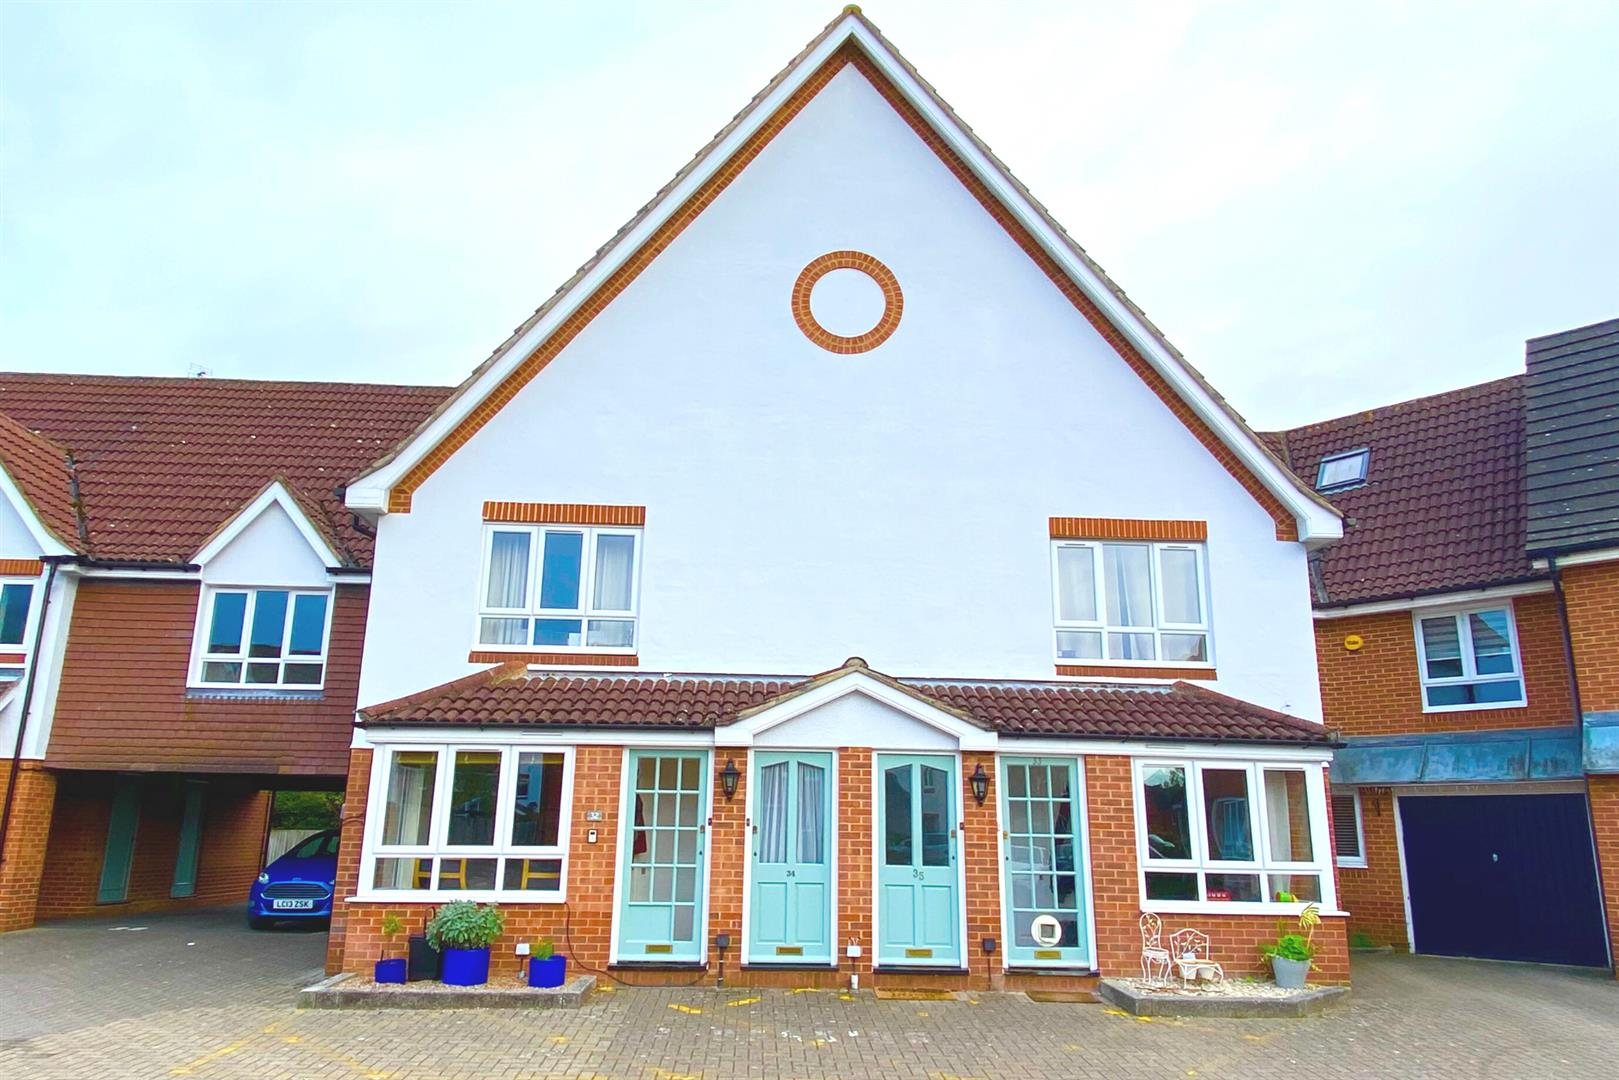 2 bed maisonette for sale in Woodley, RG5